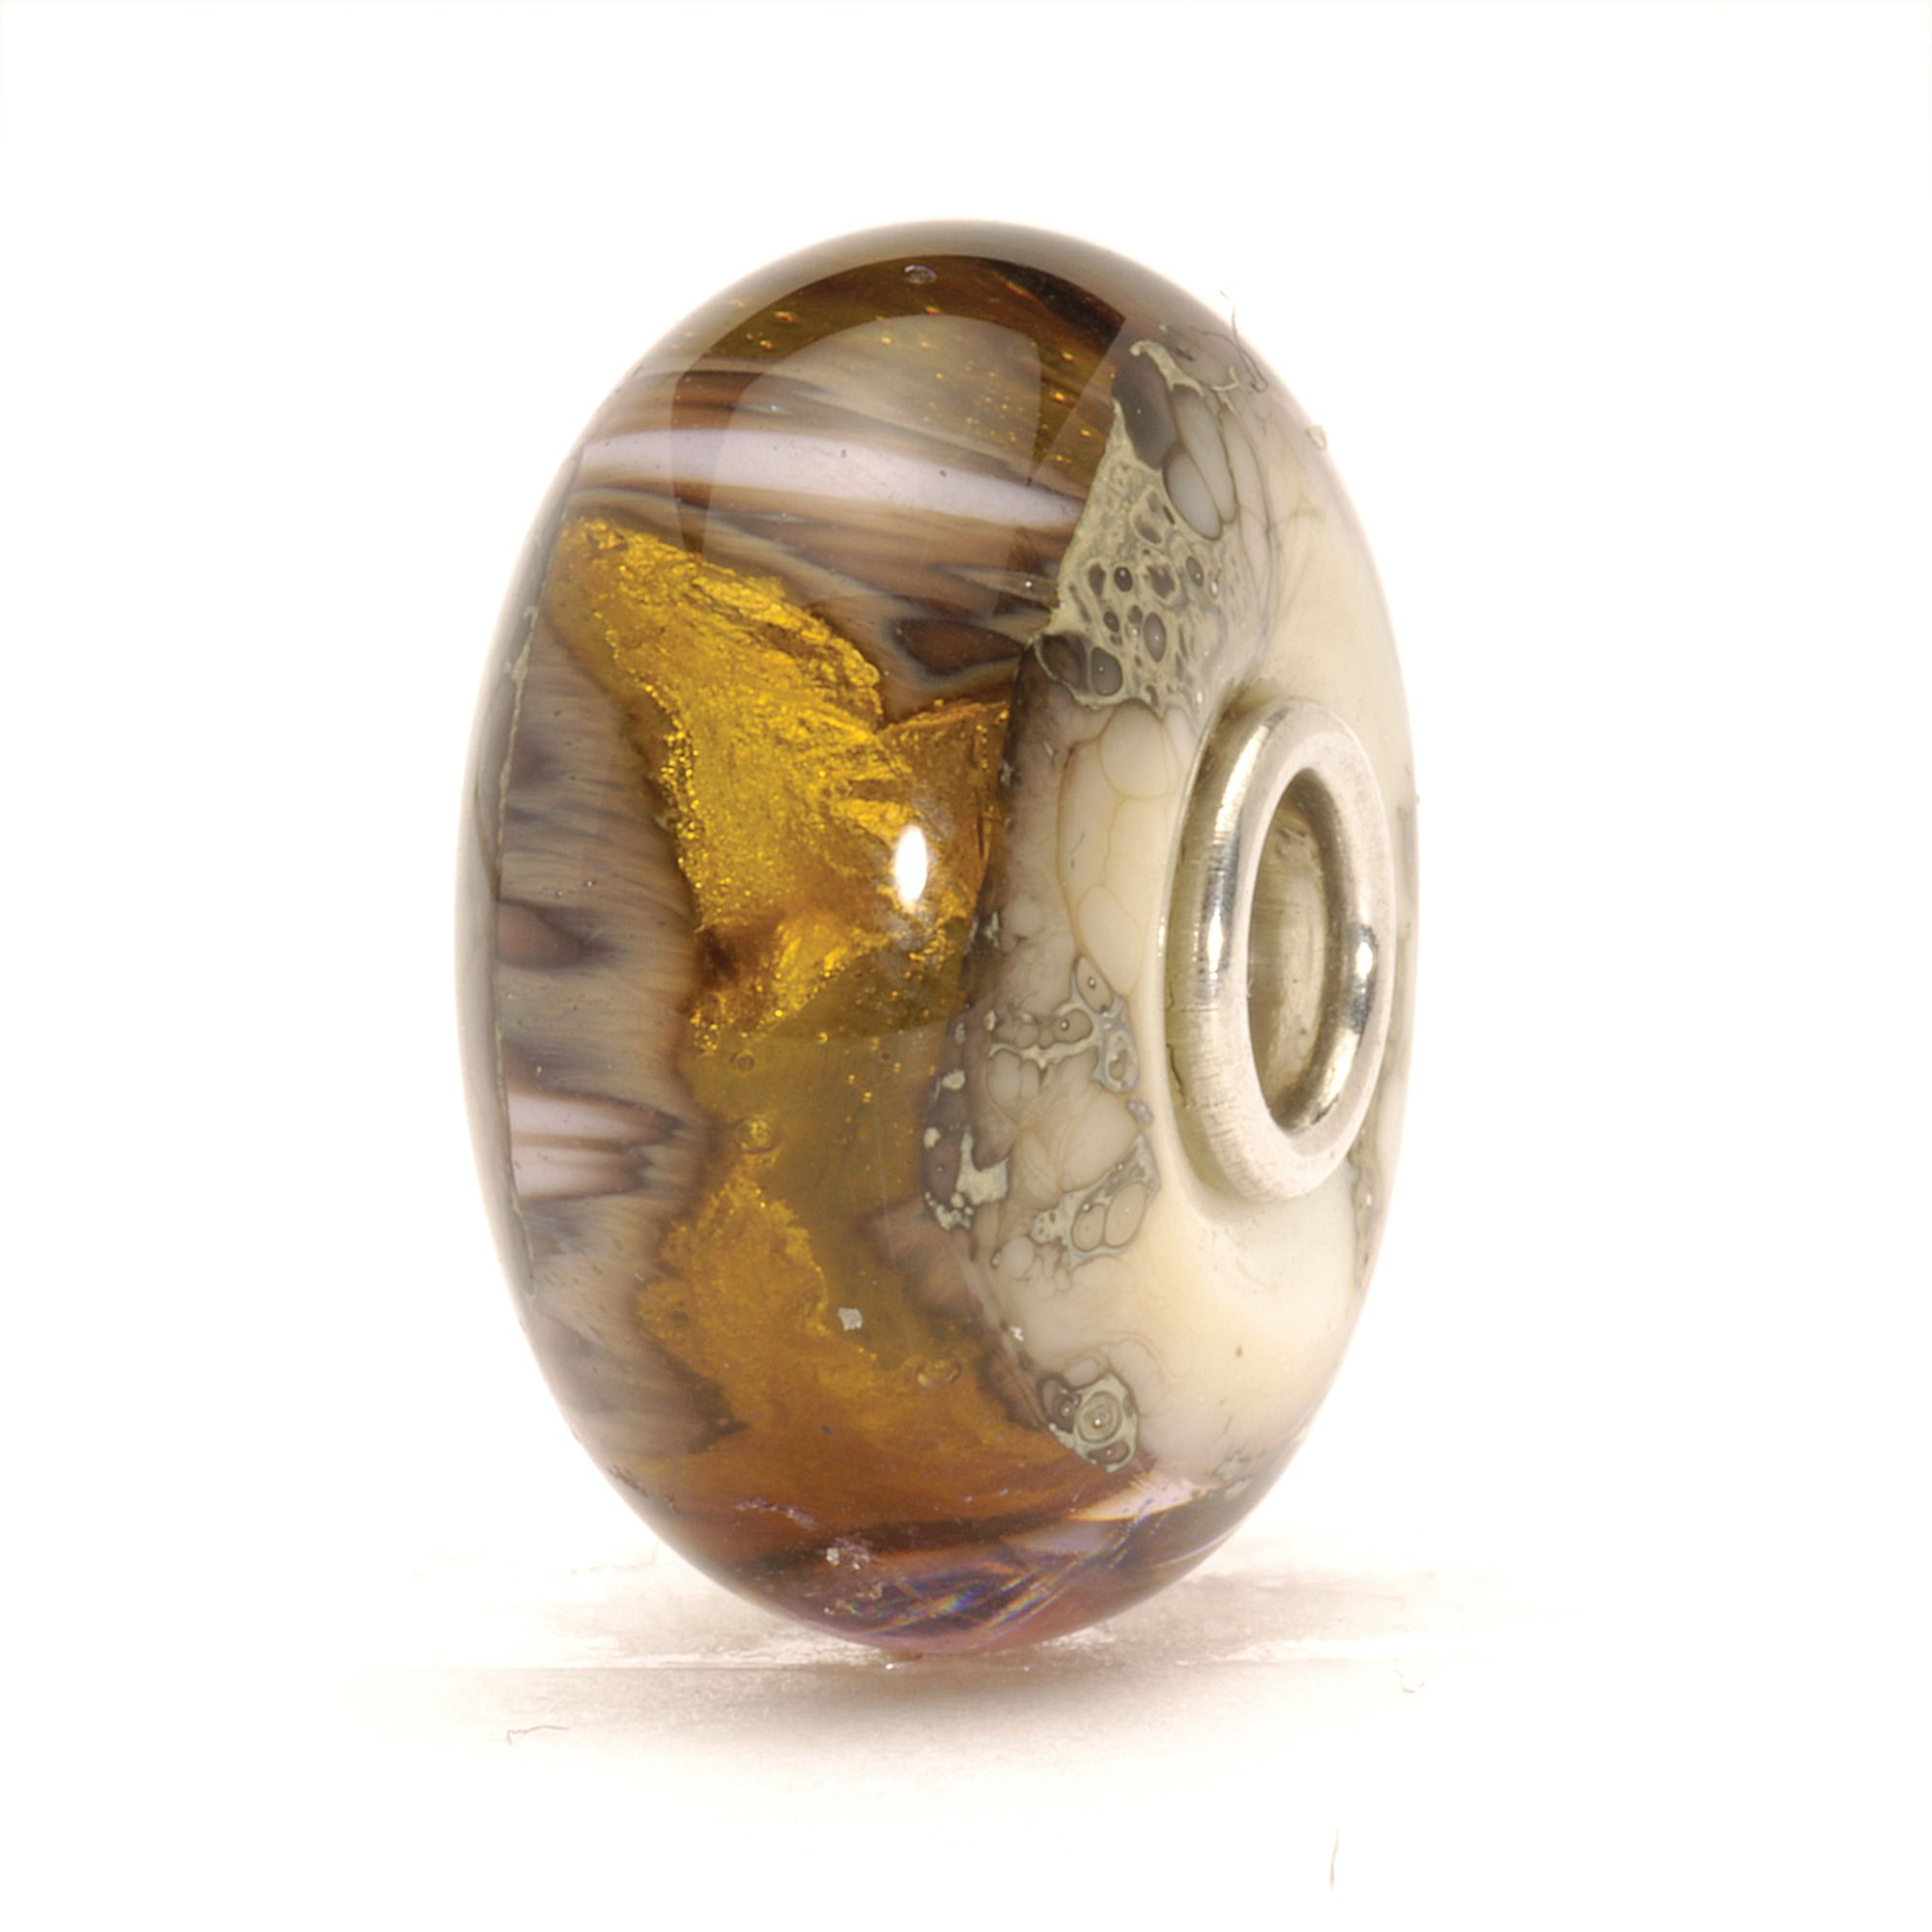 Golden Cave glass charm bead